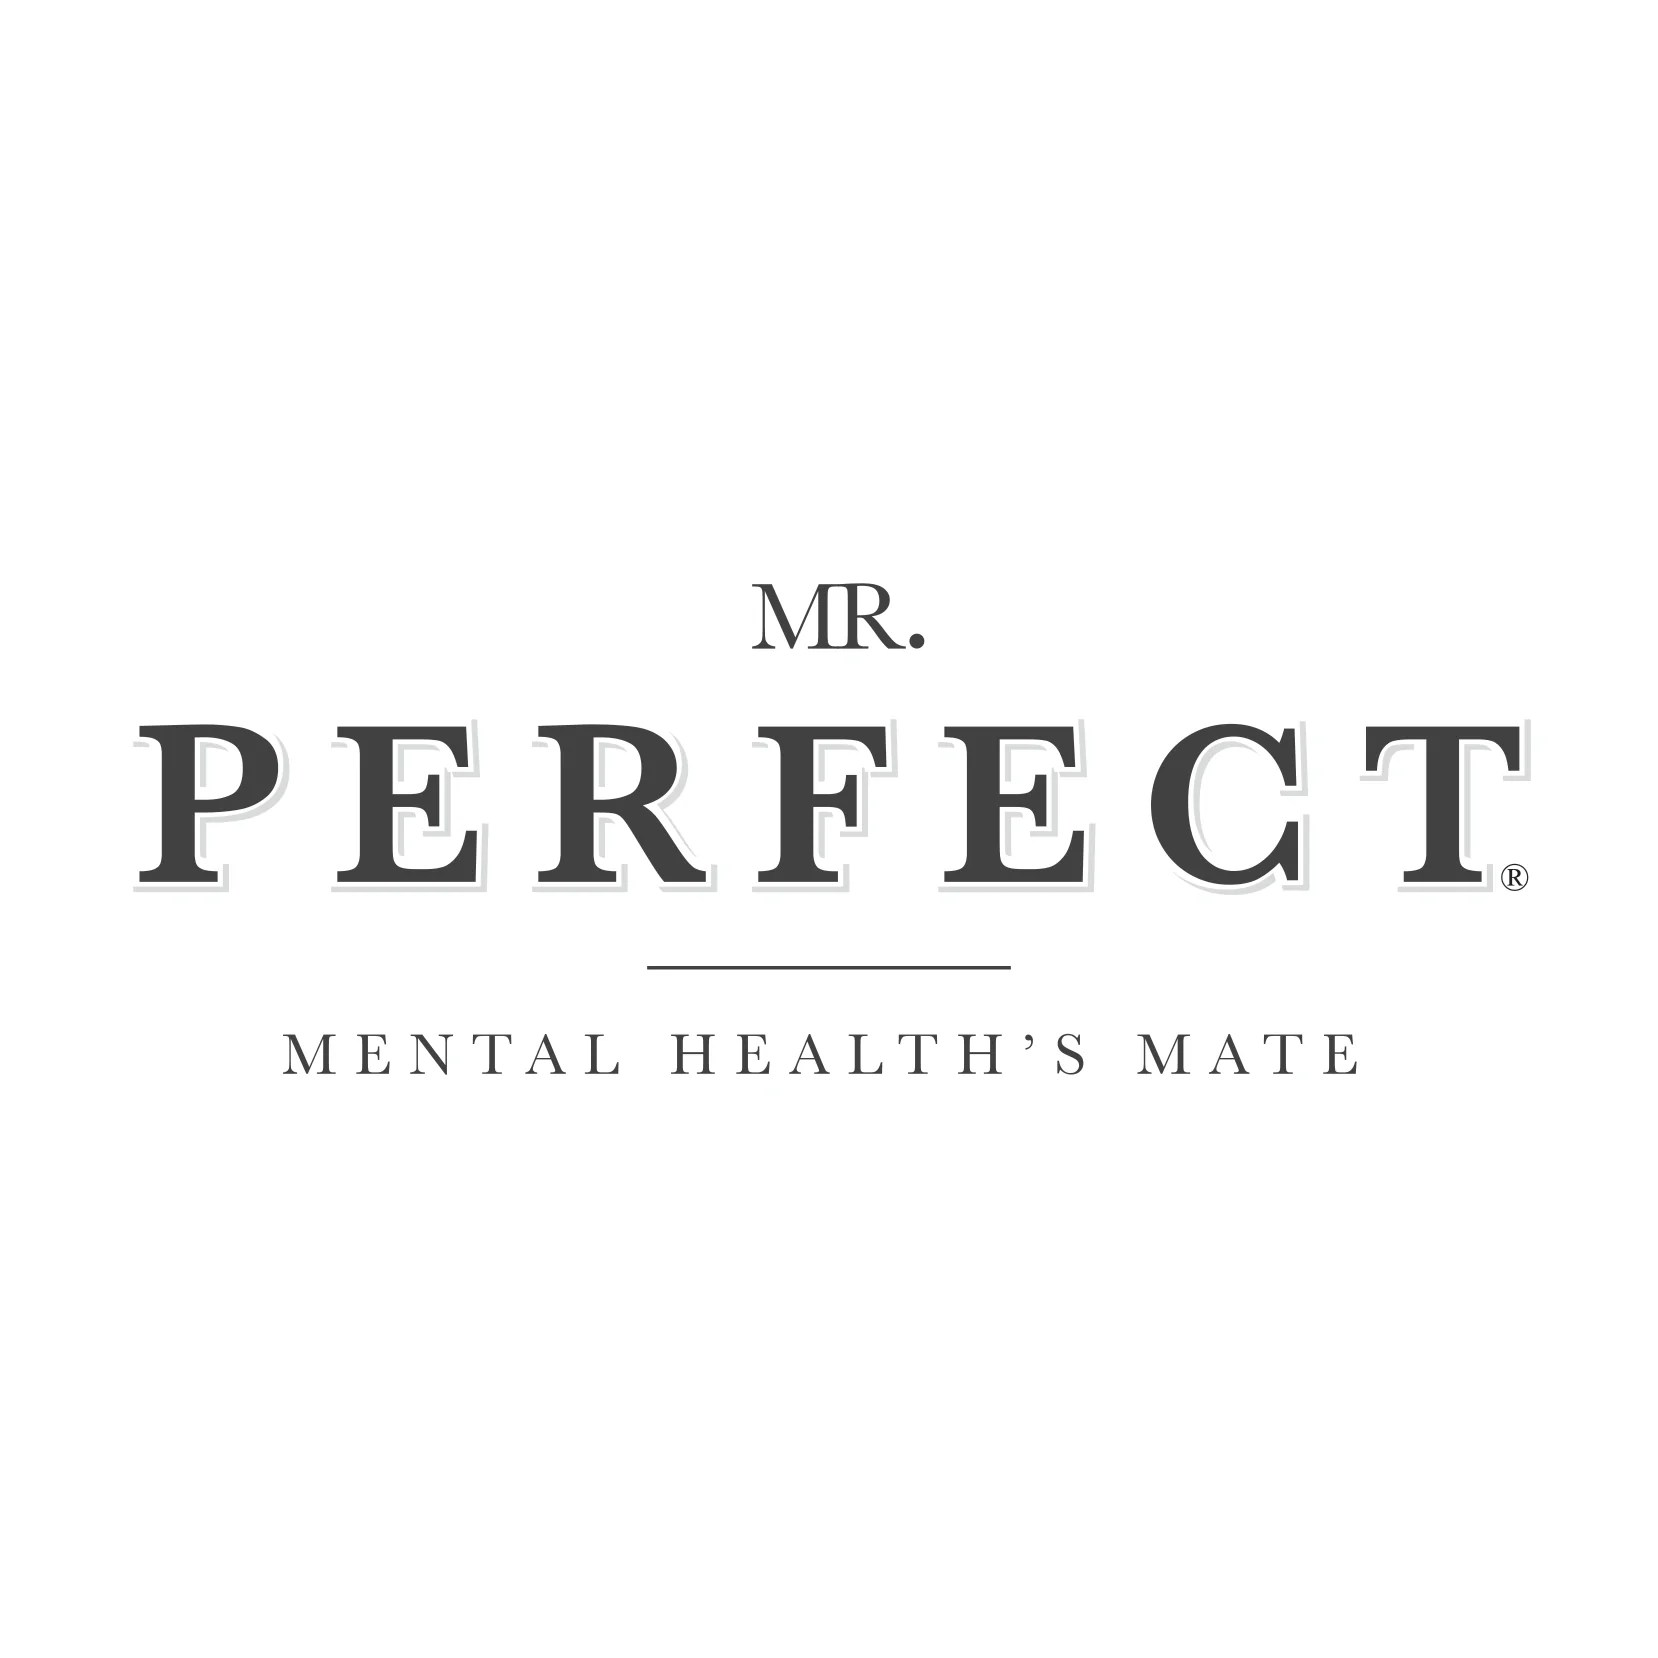 Picture Perfect Mr Perfect About Mr Perfect Mental Health S Mate